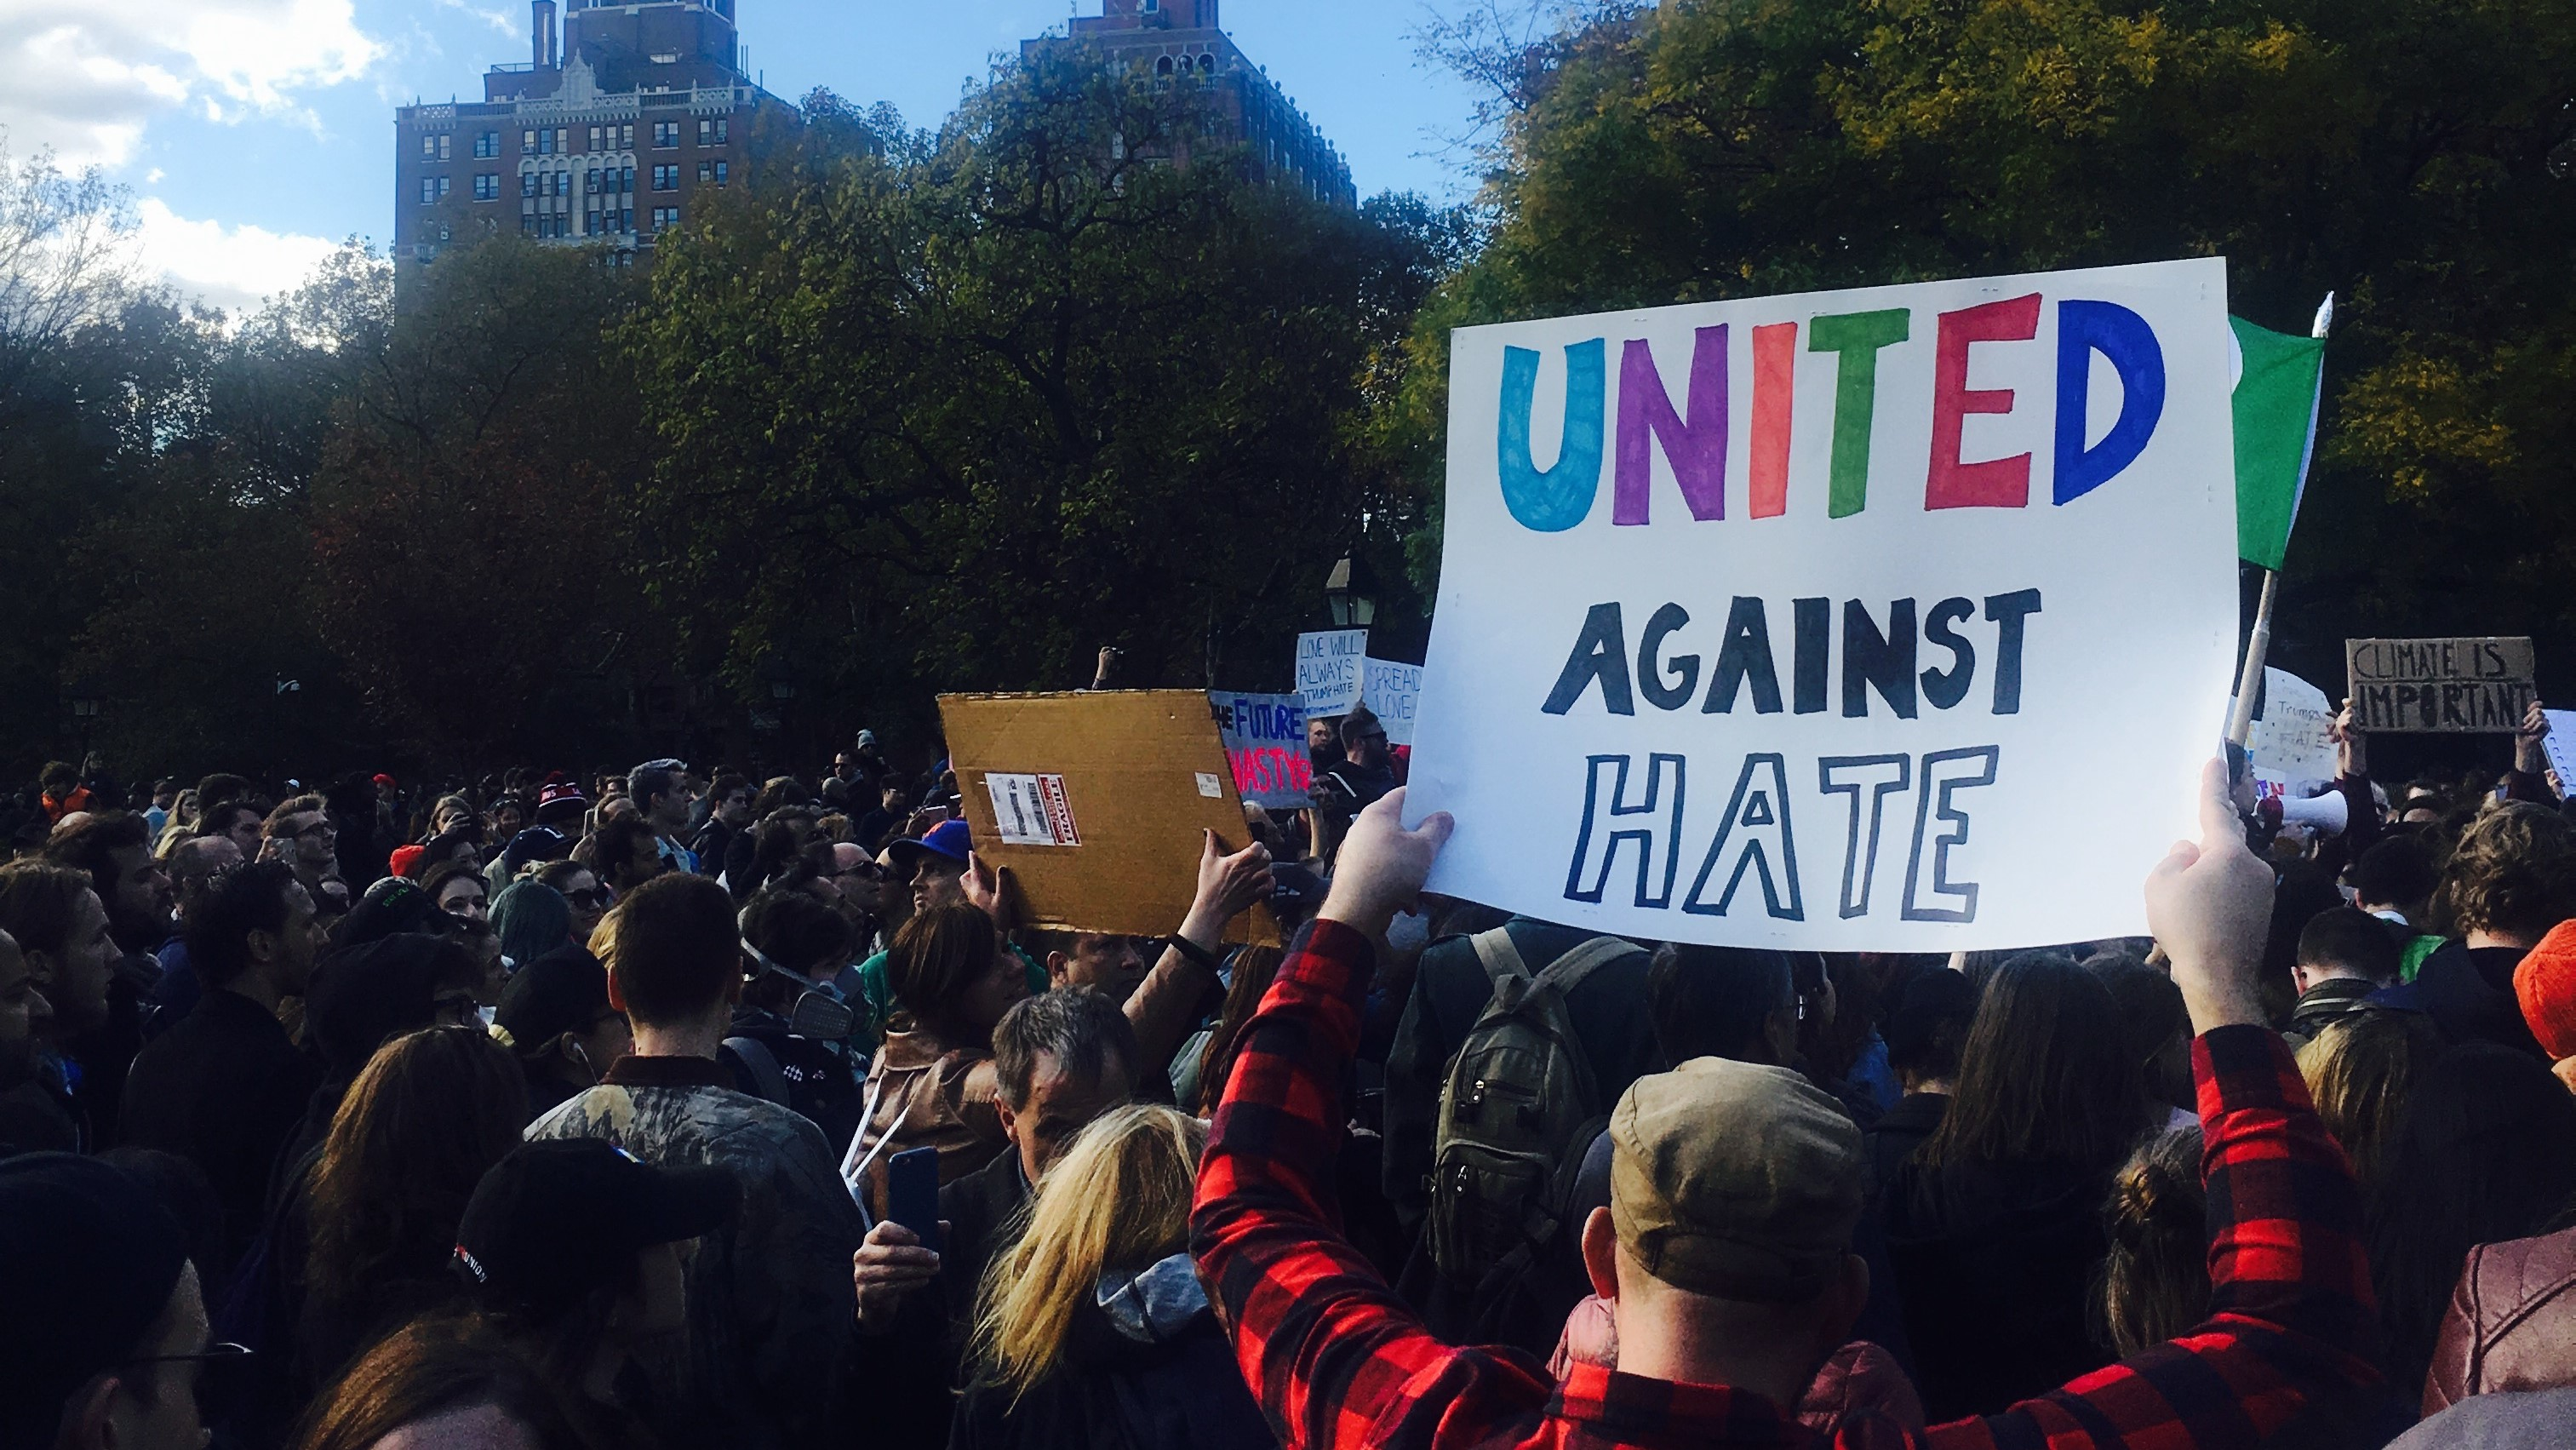 Human rights groups & advocates respond to hate speech in the aftermath of Trump's election